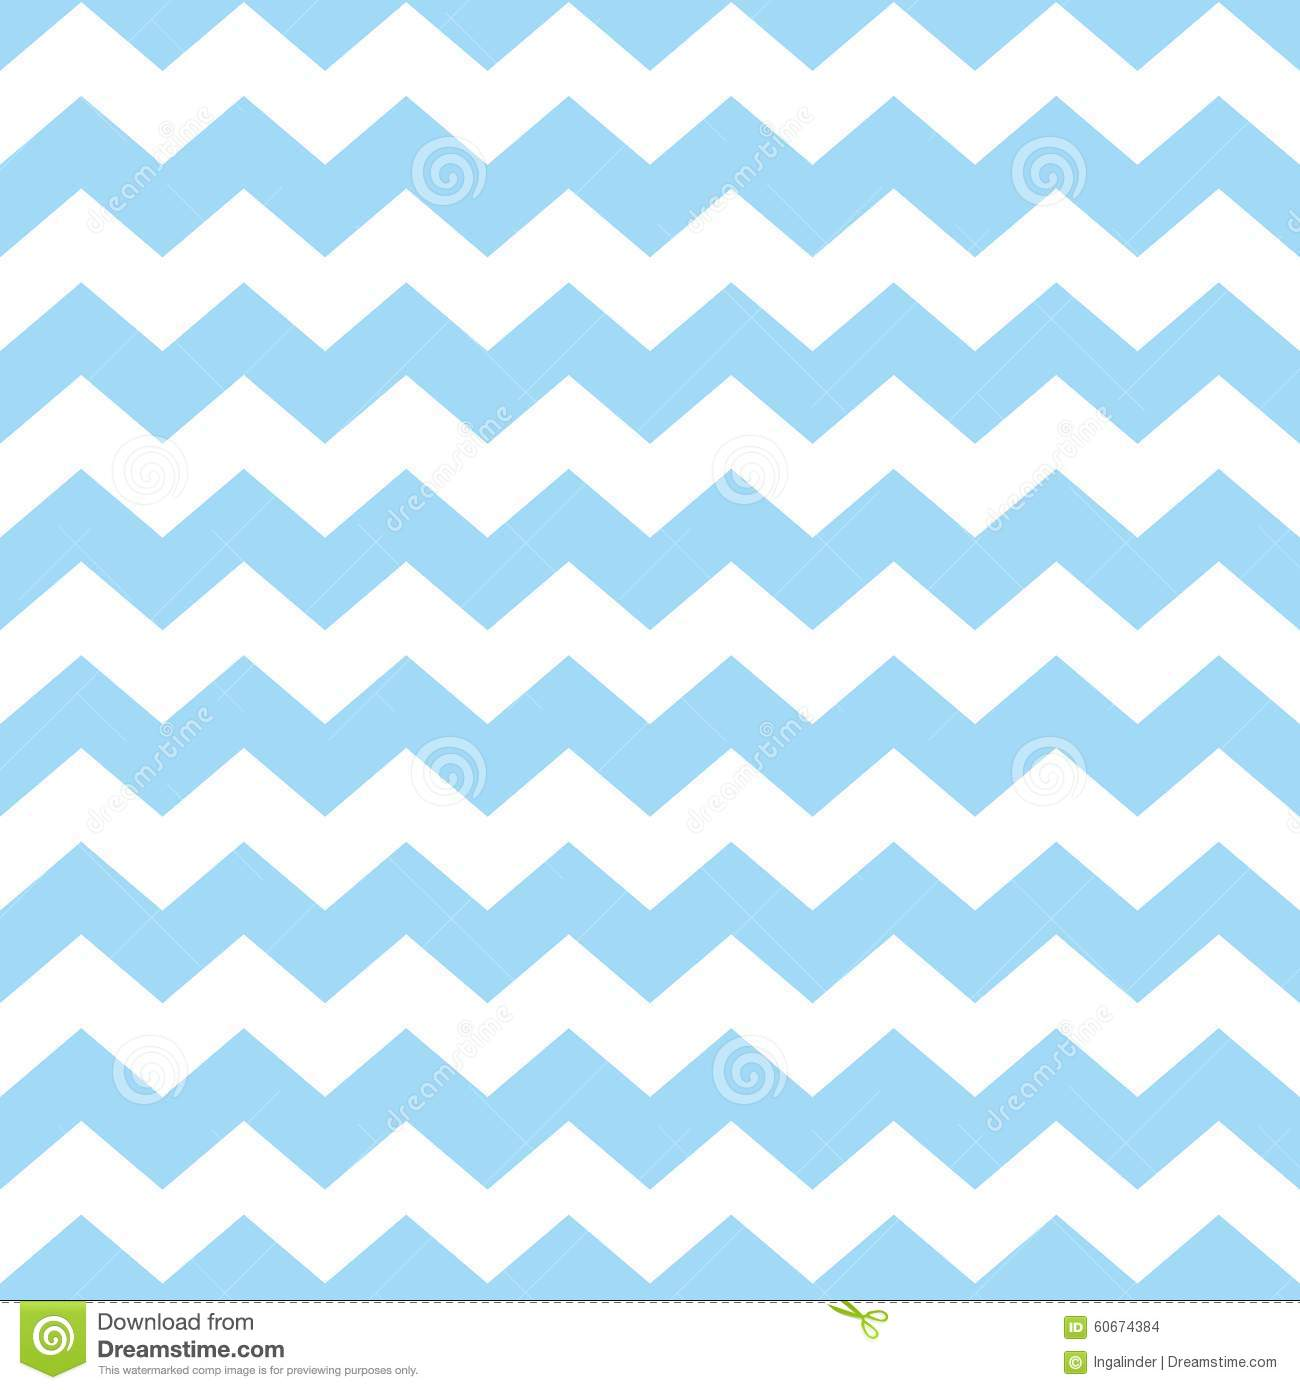 Tile Chevron Vector Pattern With Pastel Blue And White Zig Zag Background